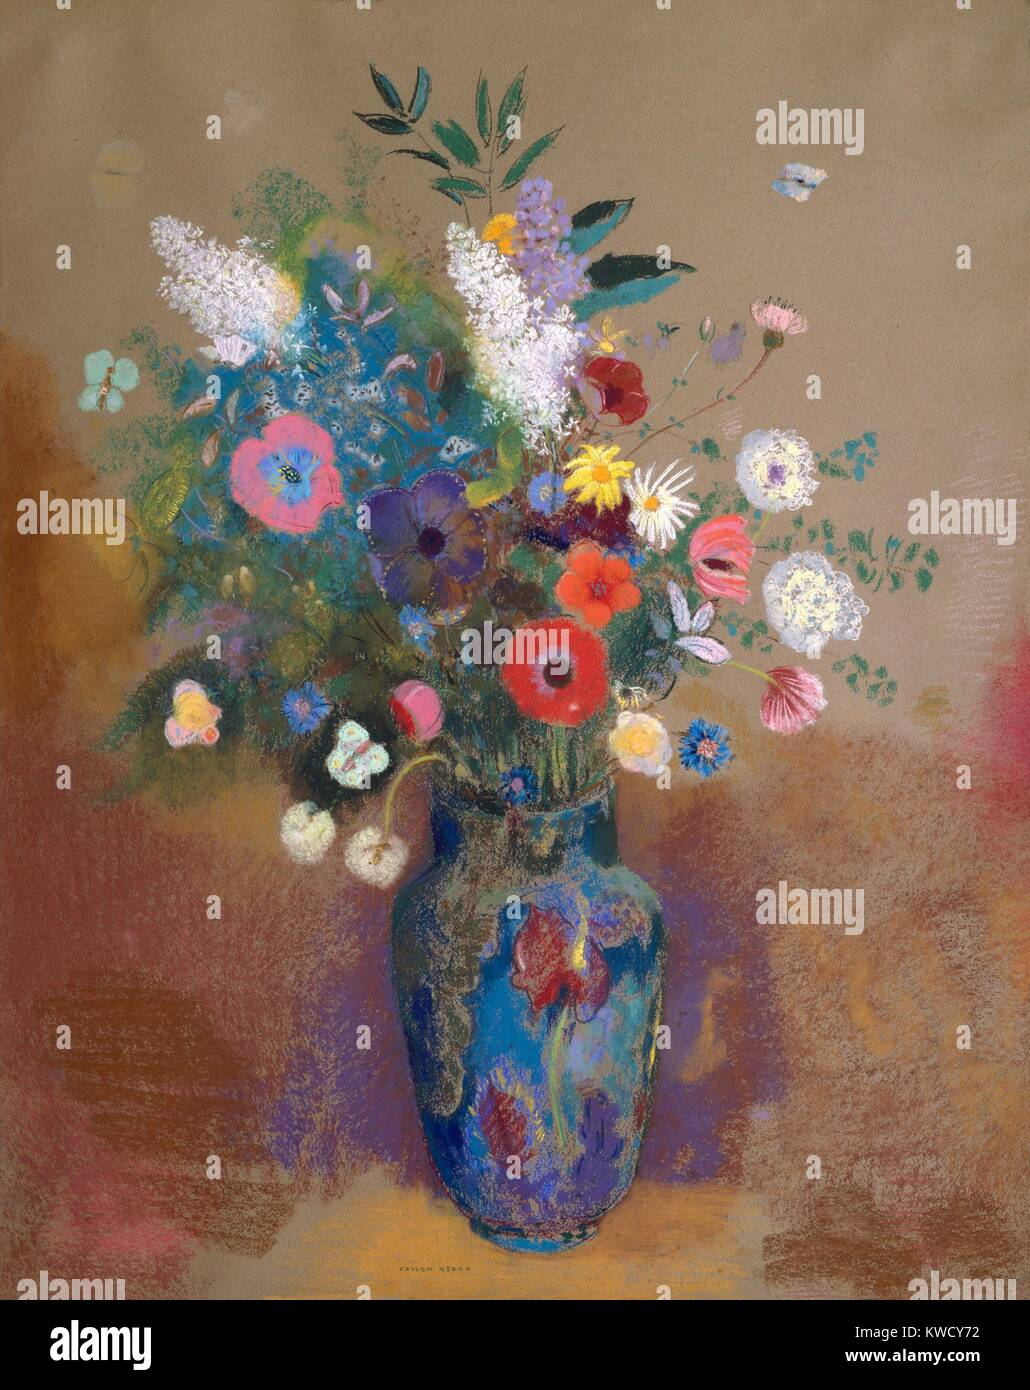 Bouquet of Flowers, by Odilon Redon, 1905, French Symbolist drawing, pastel on paper. Created when the artist was - Stock Image